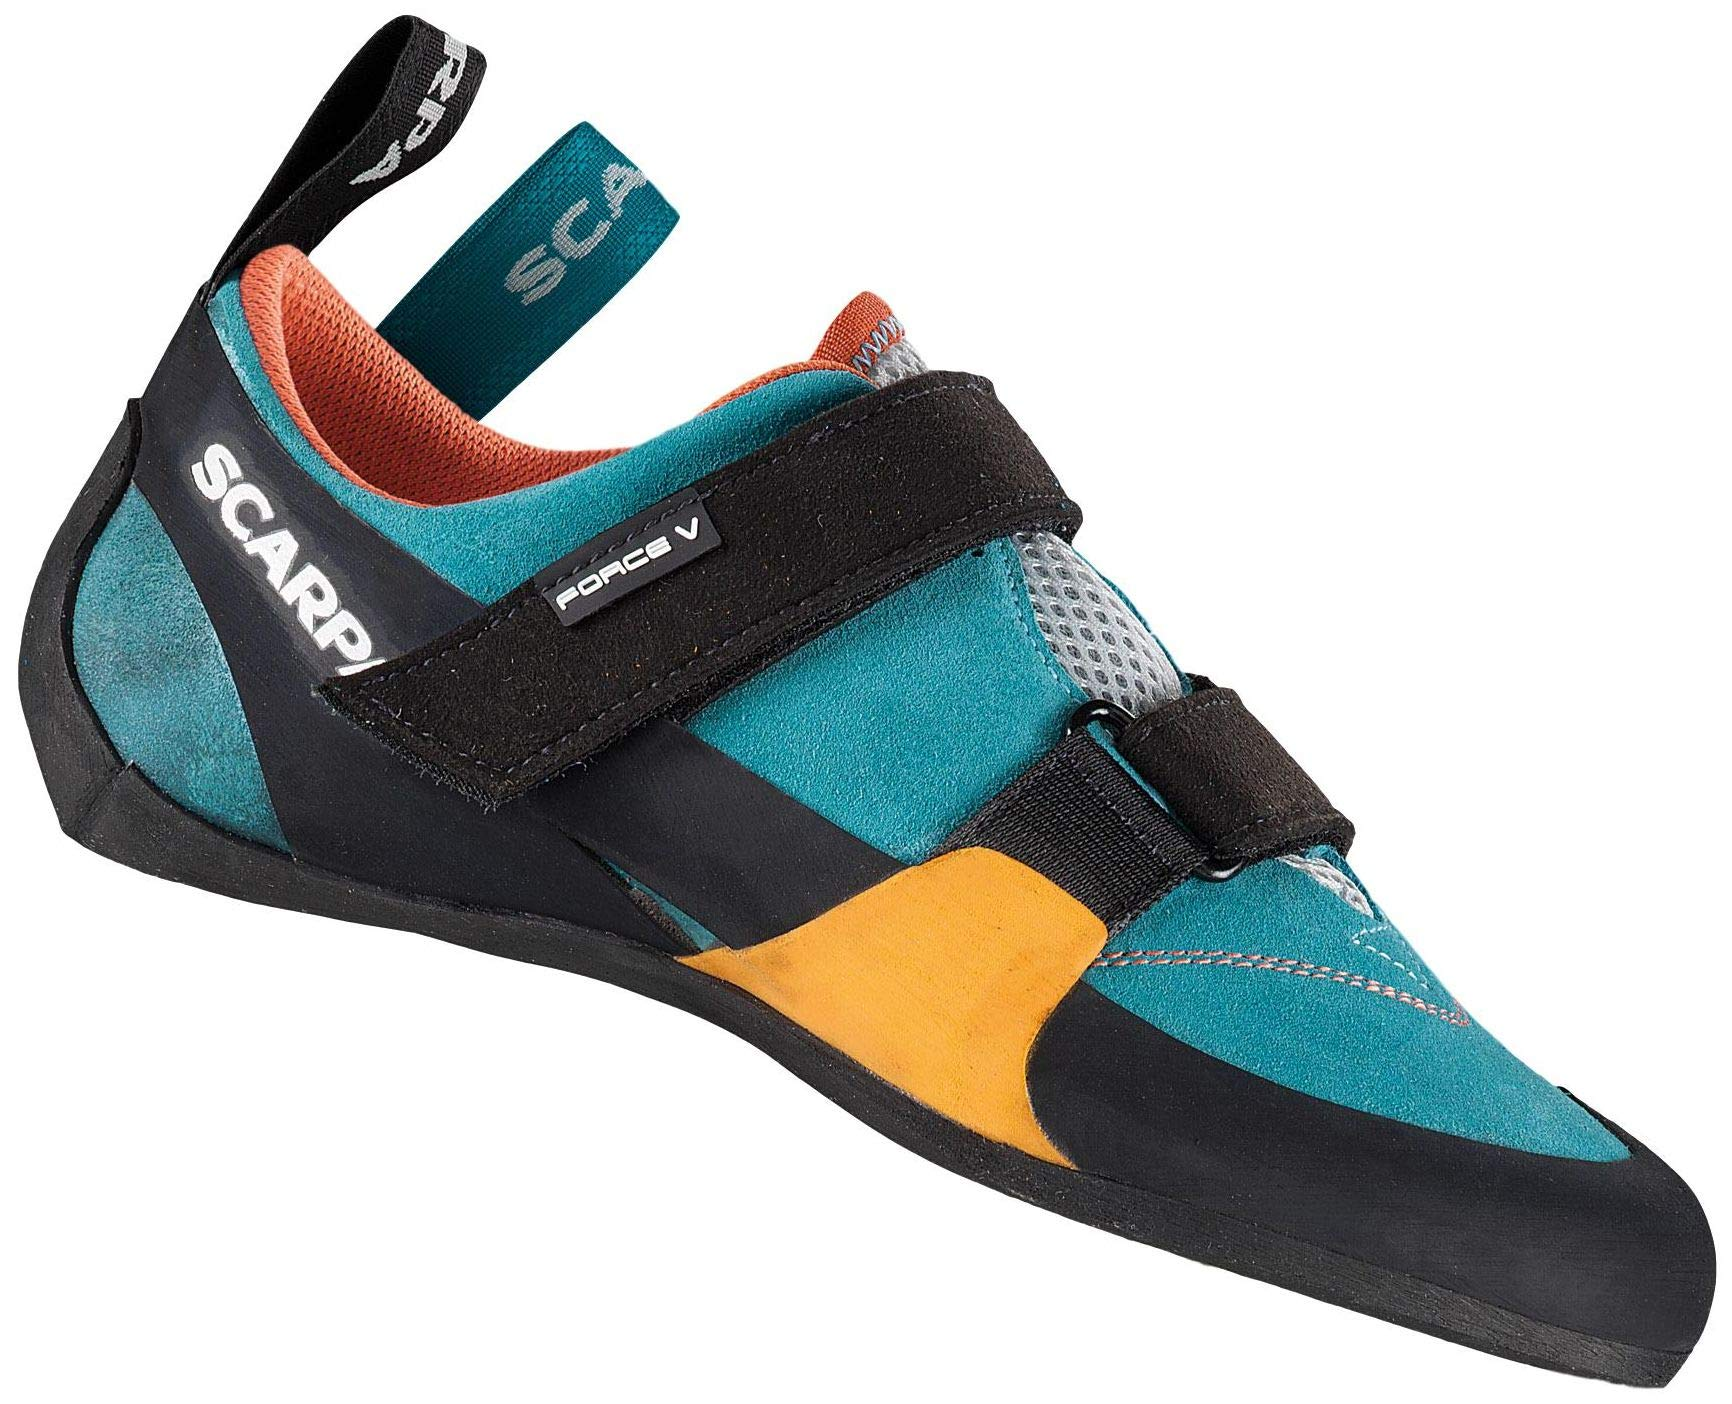 SCARPA Force V Climbing Shoe - Women's Ice Fall/Mandarin Red 42 by SCARPA